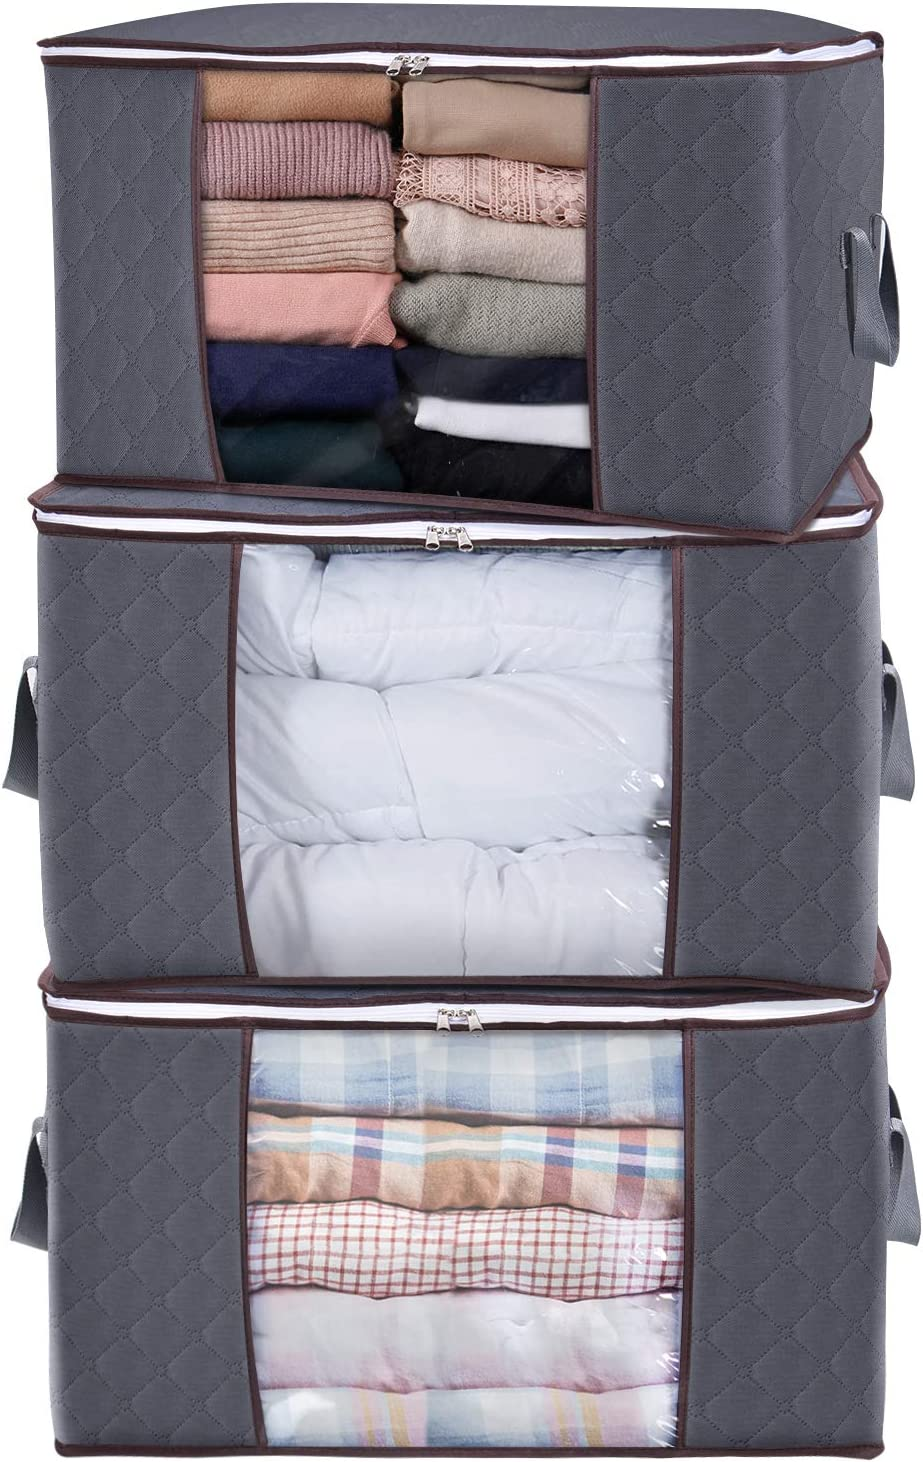 Marie kondo would be proud of you for organizing your closets with these fabric storage bins. #mariekondo #closetorganization #nurseryorganization #storagemusthaves #organizedhome